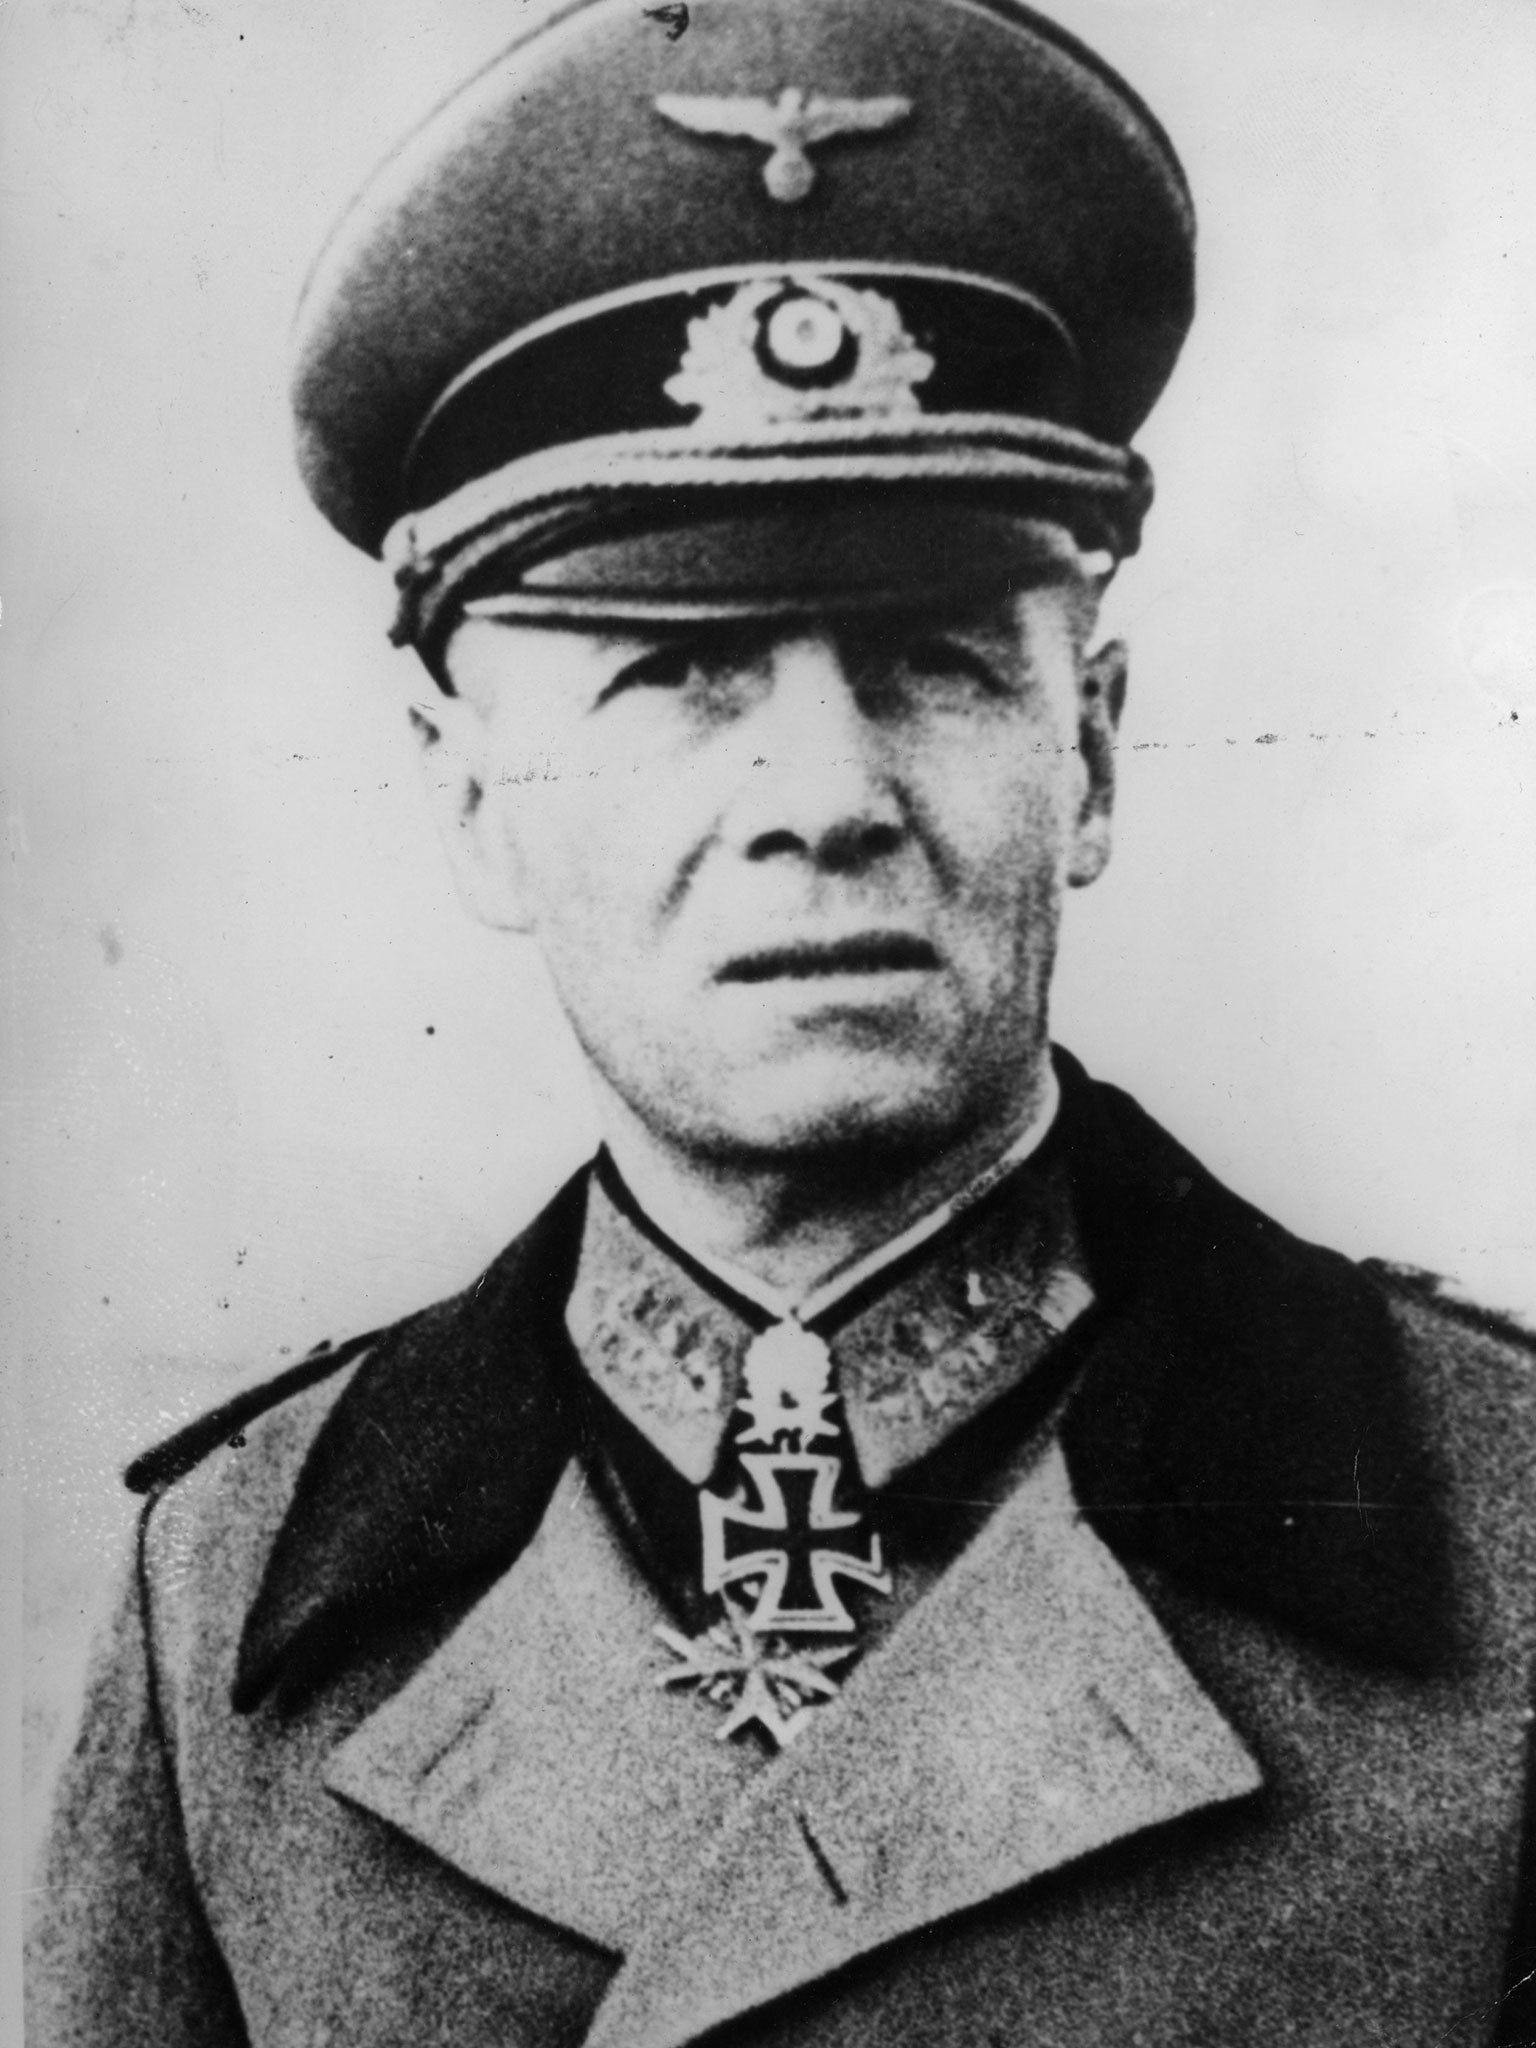 Hitler's all-conquering stormtroopers 'felt invincible